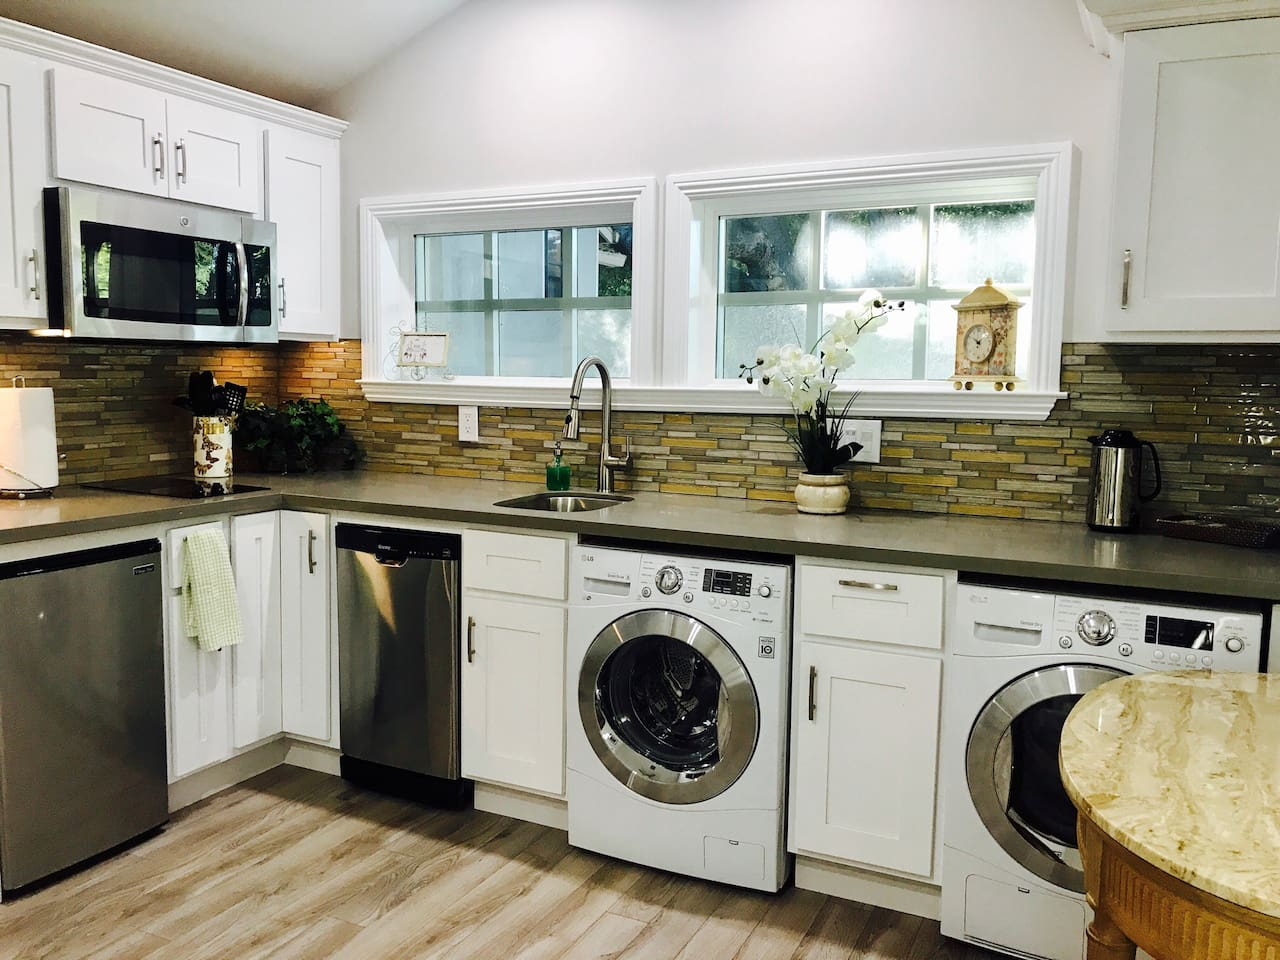 Fully equipped kitchen, with coffee/tea availability and bottle waters -complimentary. New state of the art energy efficiency washer, dryer, two stove top burner.  All new appliances!   **(Wash/dryer usage surcharge- $35 for up to a week stay. For i.e. 2weeks stay=$70.) Please let us know ahead of time for this service. Wash detergent is not included. We asked you do the washing for the days you are here. Please have the courtesy and not wash week's travel from elsewhere. It's not a laundry mat and if you do, let us know-you can pay for those extra loads. The washer/dryer is an extra amenity we add to this executive studio). Many  thanks and for your understanding !